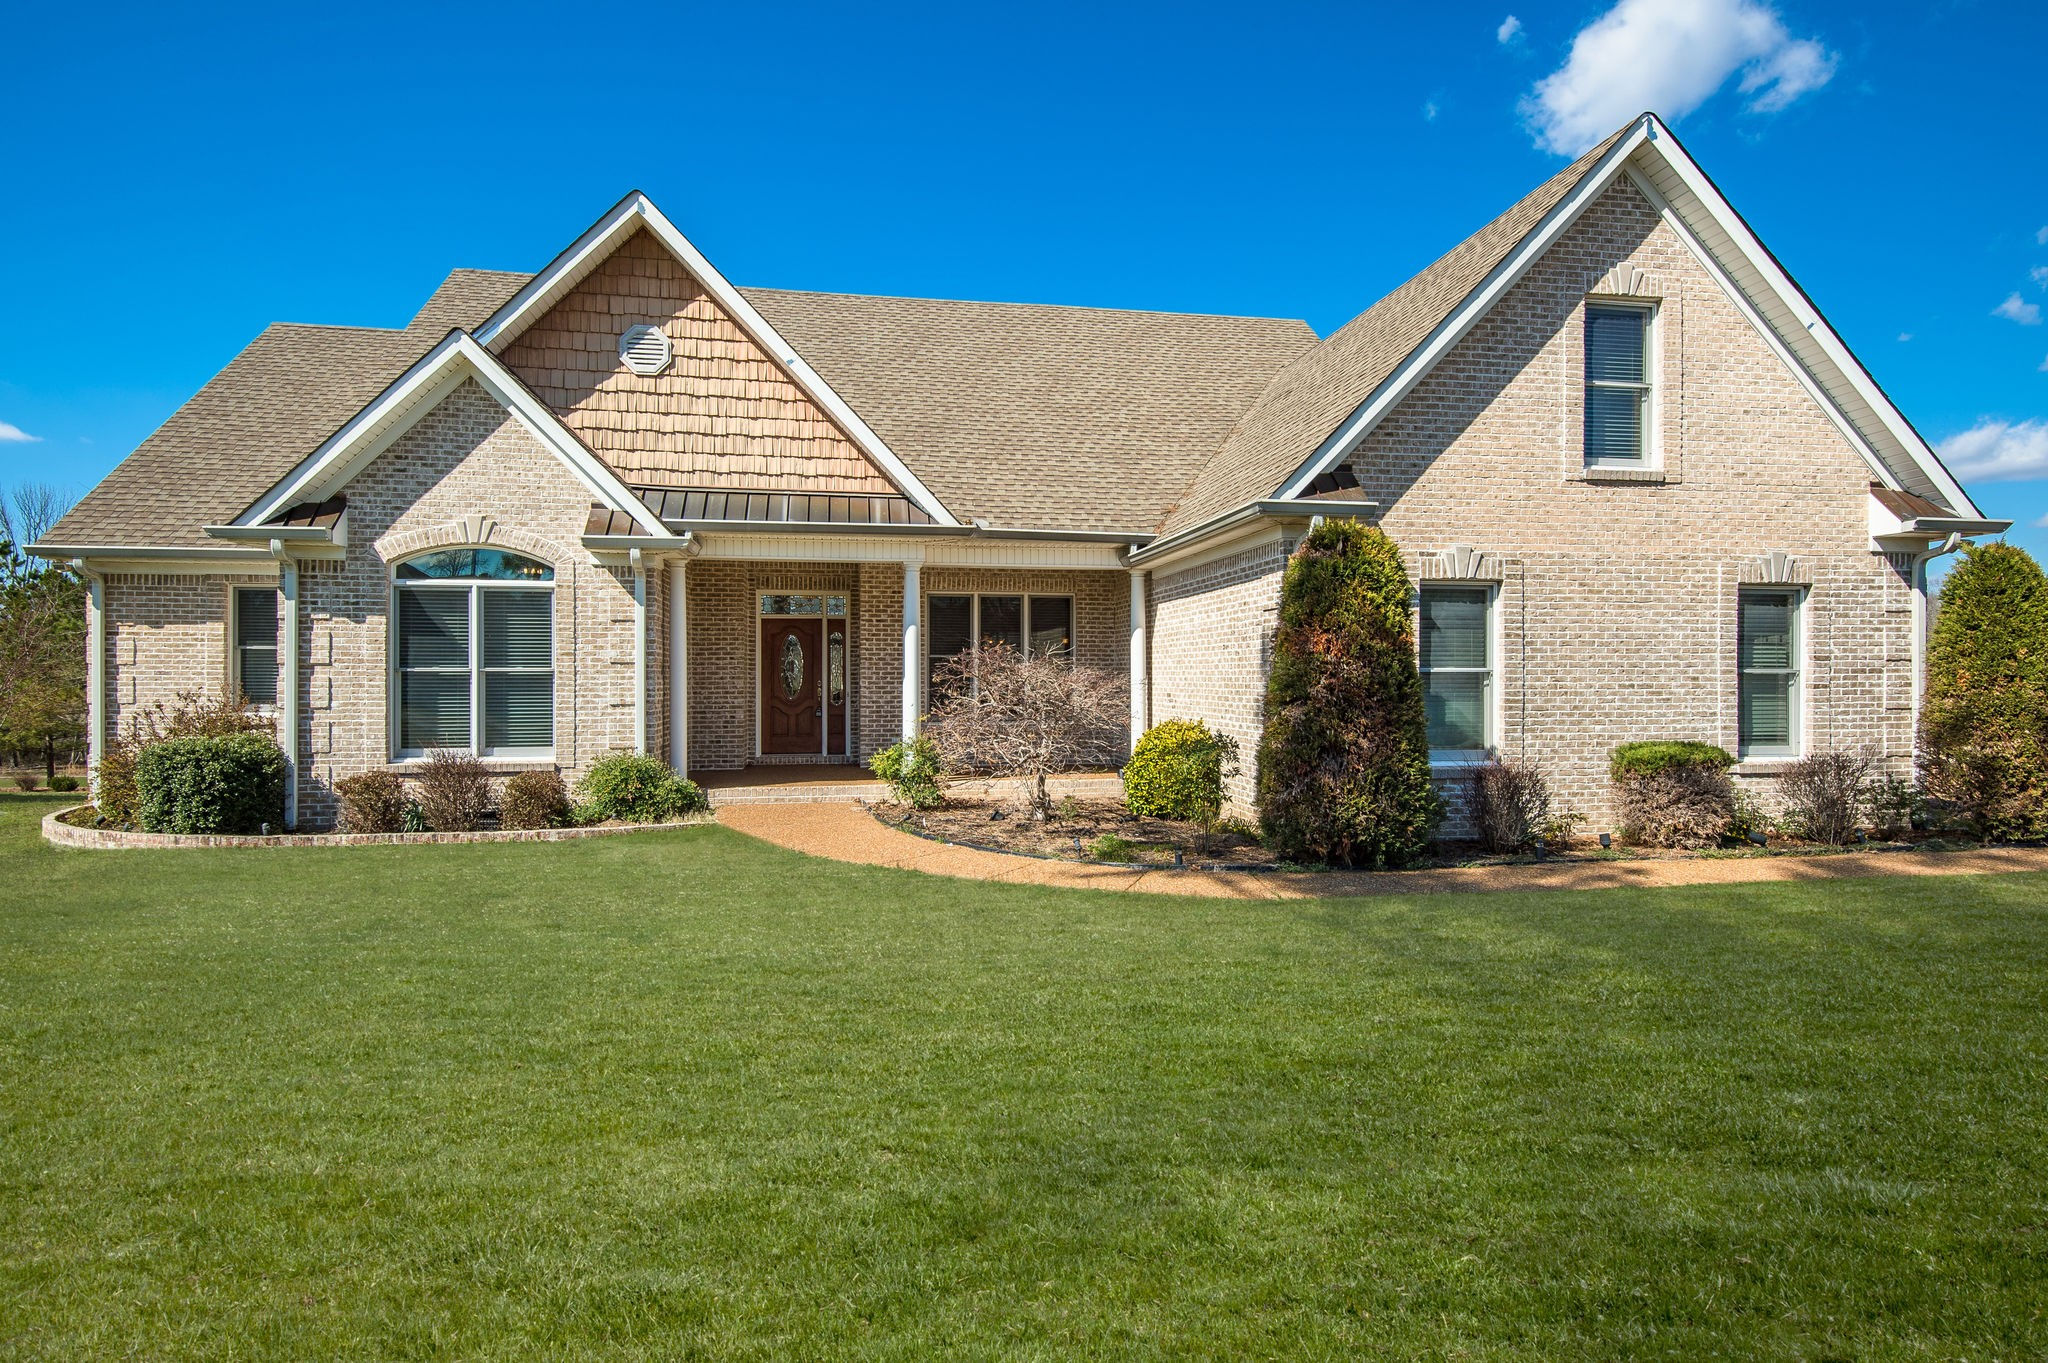 524 Country Club Drive, Dickson, TN 37055 - Dickson, TN real estate listing